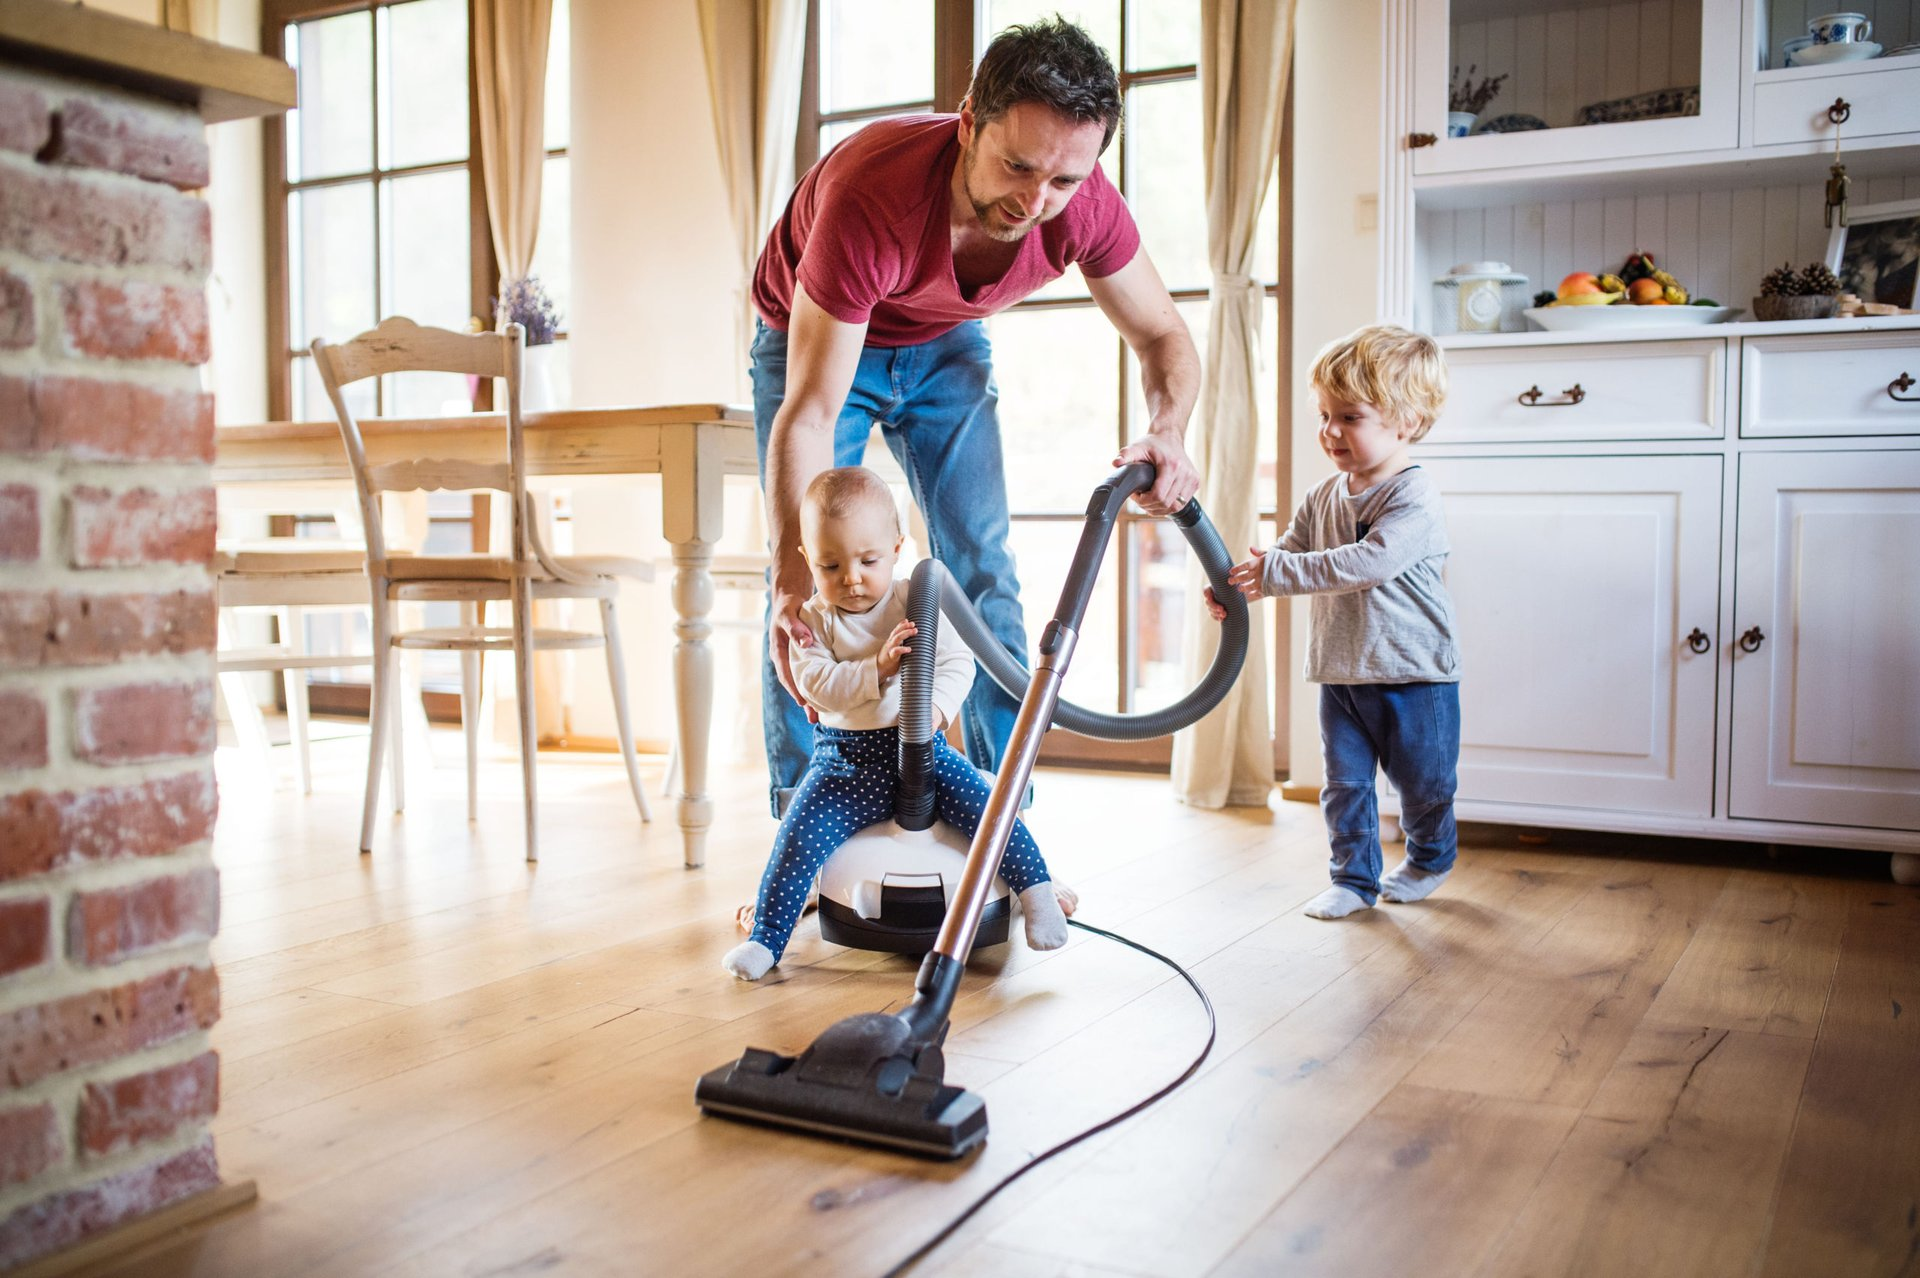 a man vacuums his kitchen